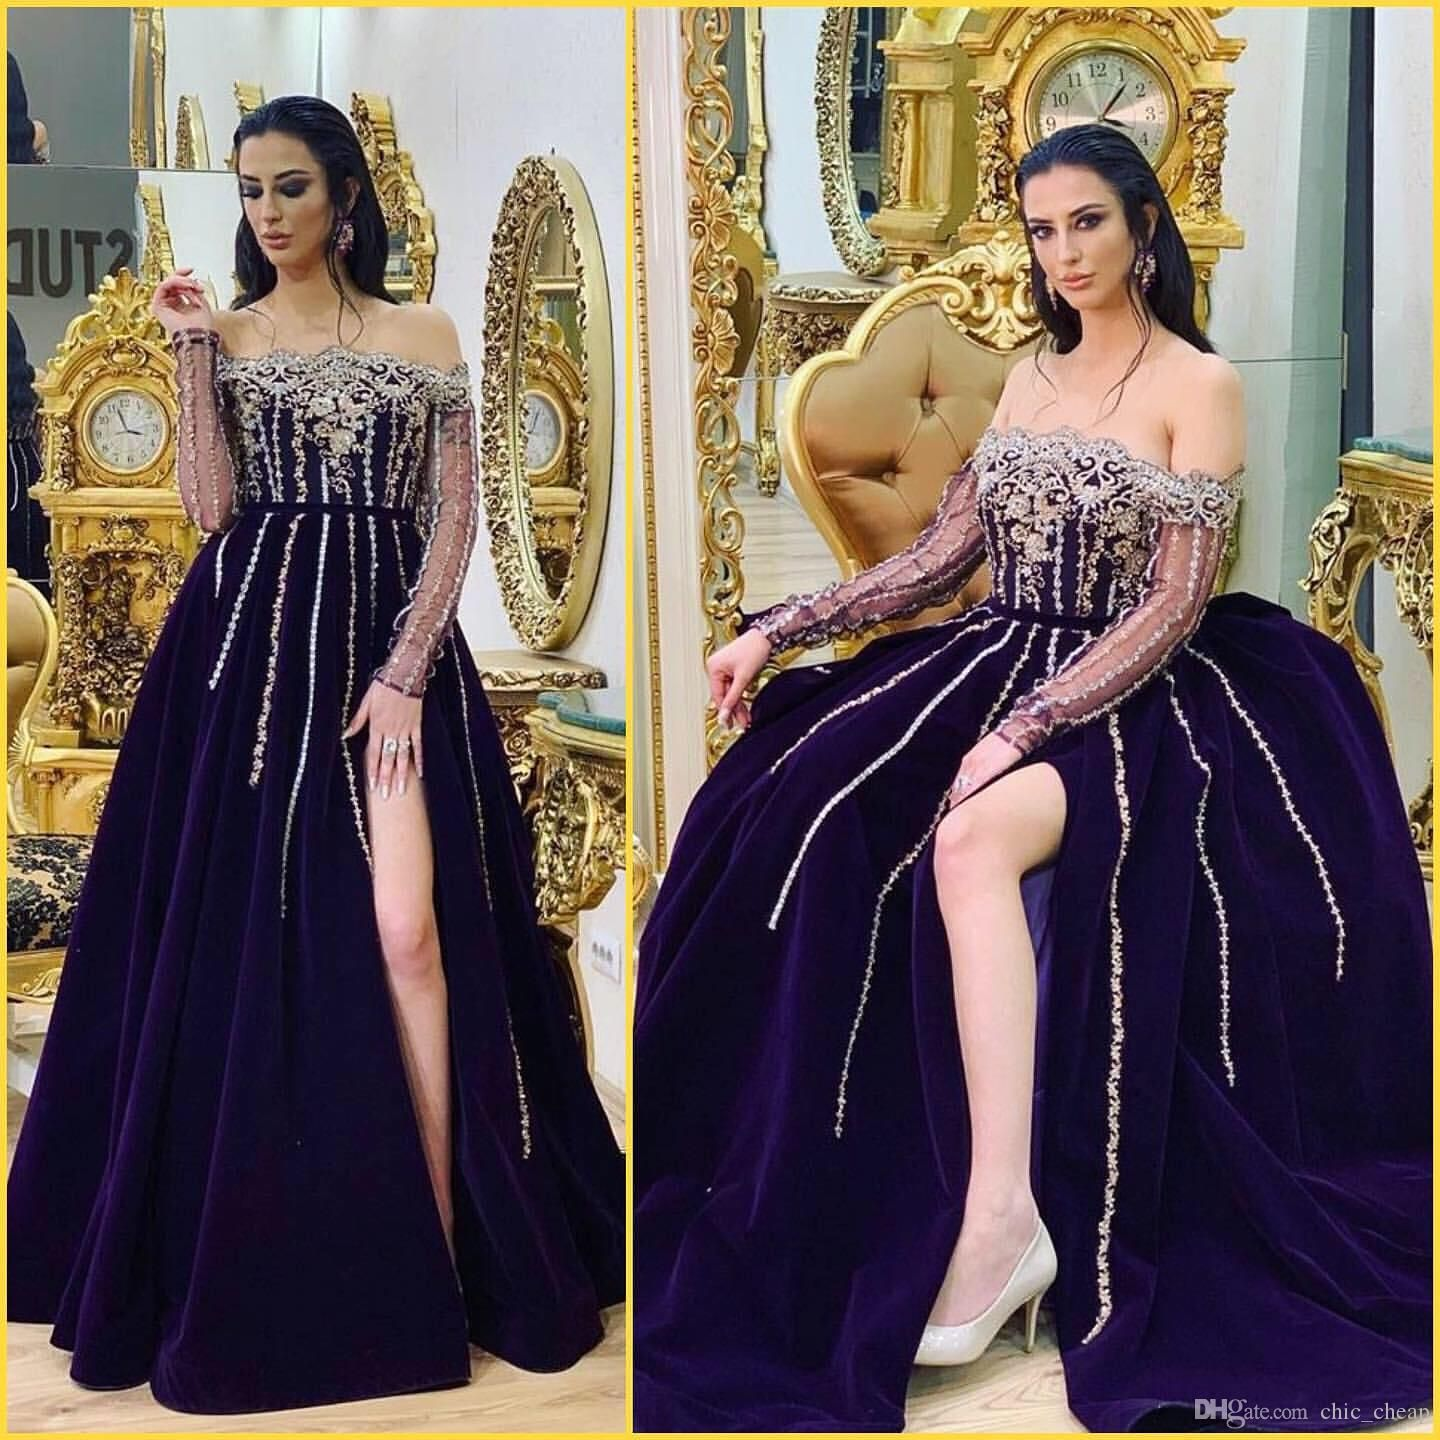 Aso Ebi 2019 Arabic Lace Beaded Evening Dresses Long Sleeves High Split Prom Dresses Velvet Formal Party Bridesmaid Pageant Gowns Zj522 From Chic Cheap 101 71 Best Prom Dress Websites Long Sleeve Evening [ 1440 x 1440 Pixel ]